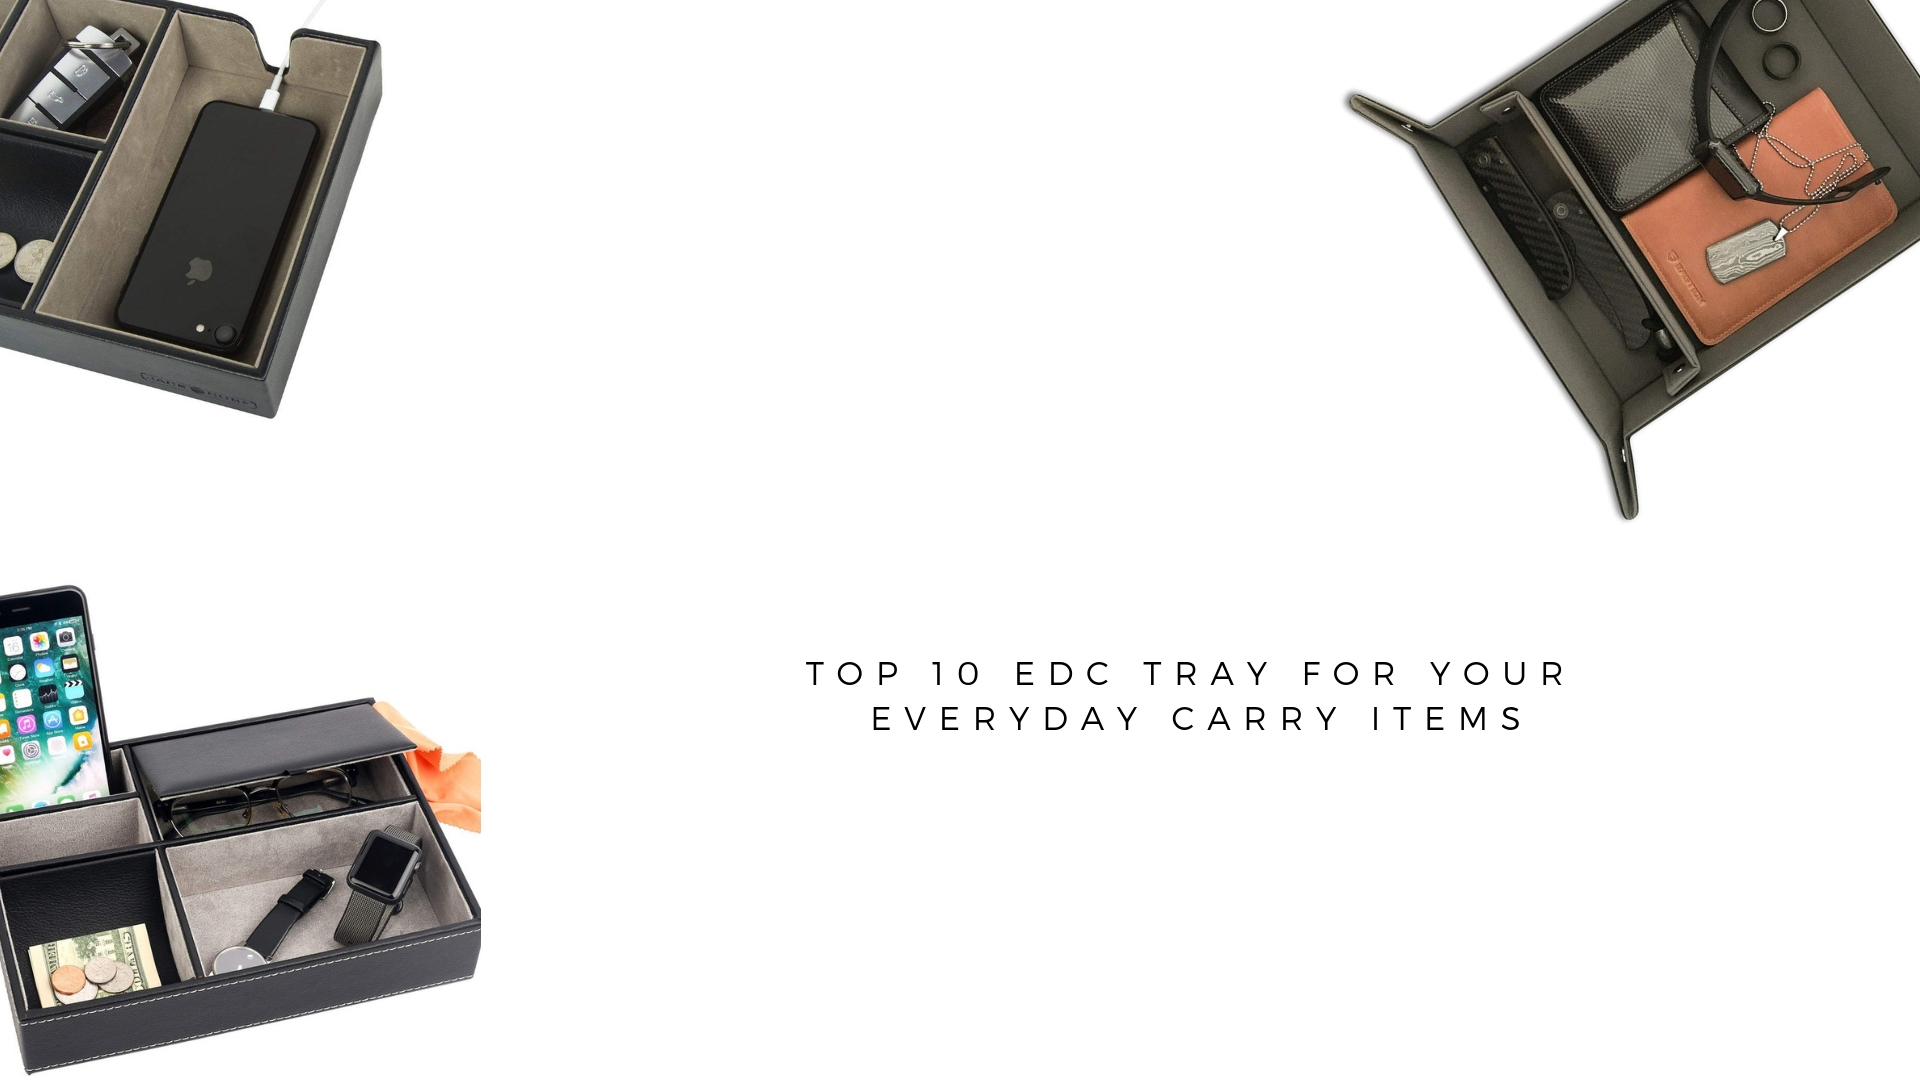 Top 10 Edc Tactical Tray For Your Everyday Carry Items